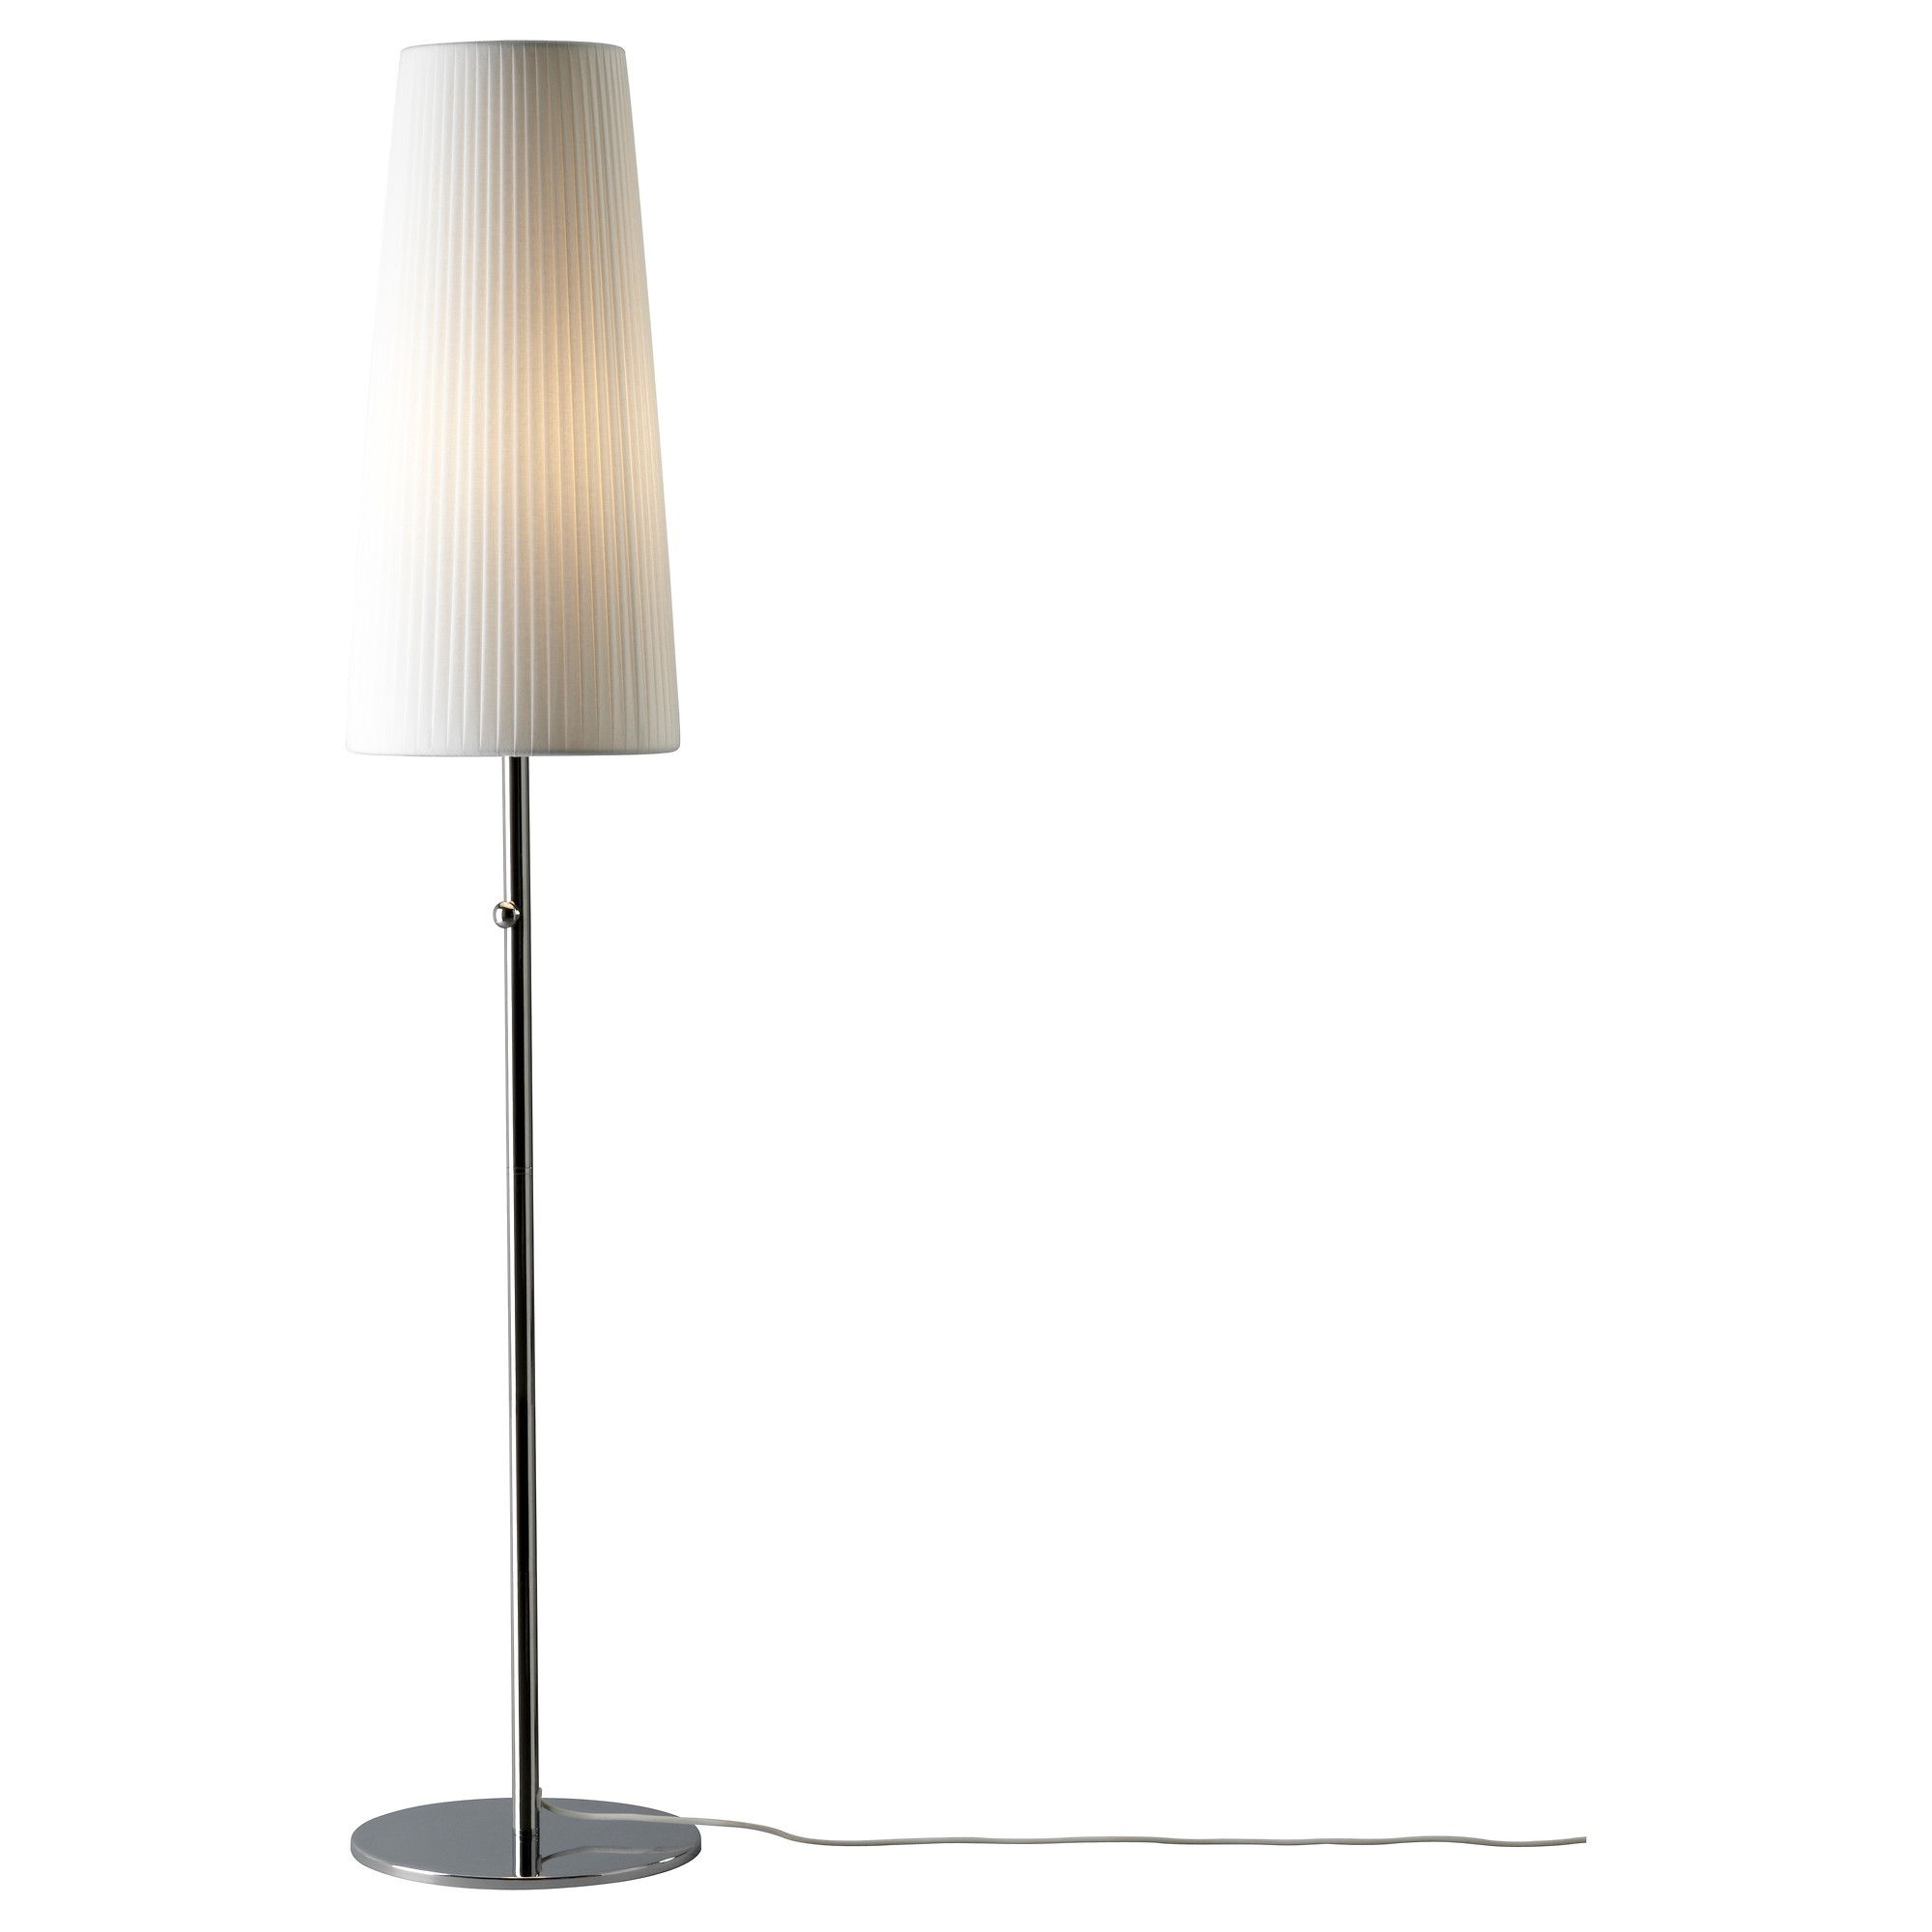 Ikea Lamp Shade Replacement: IKEA 365+ LUNTA Floor Lamp